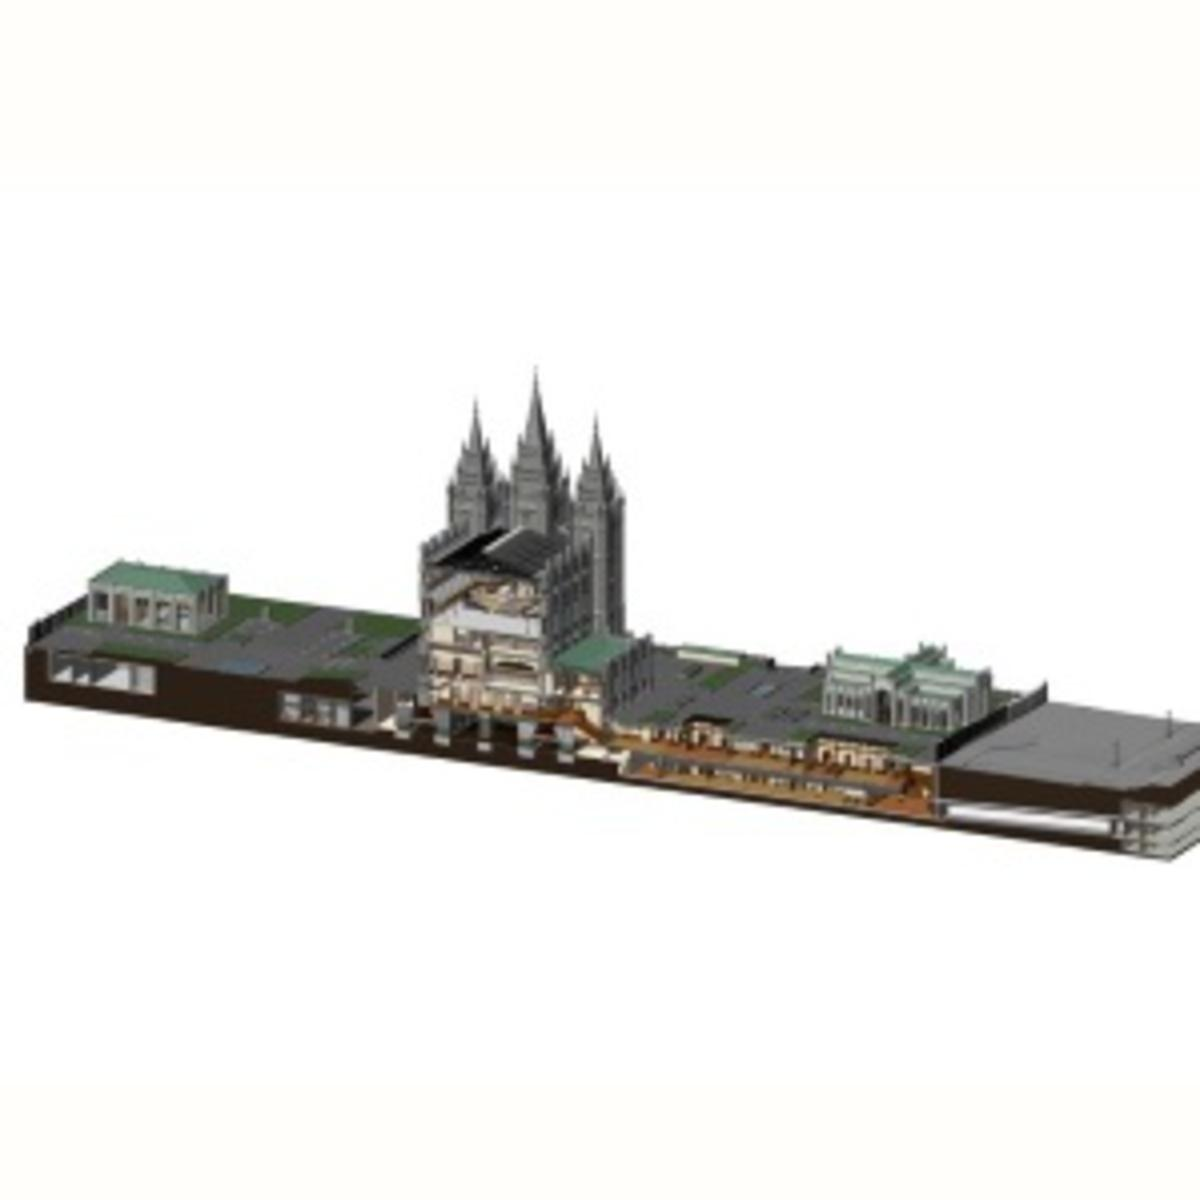 Salt Lake Temple model